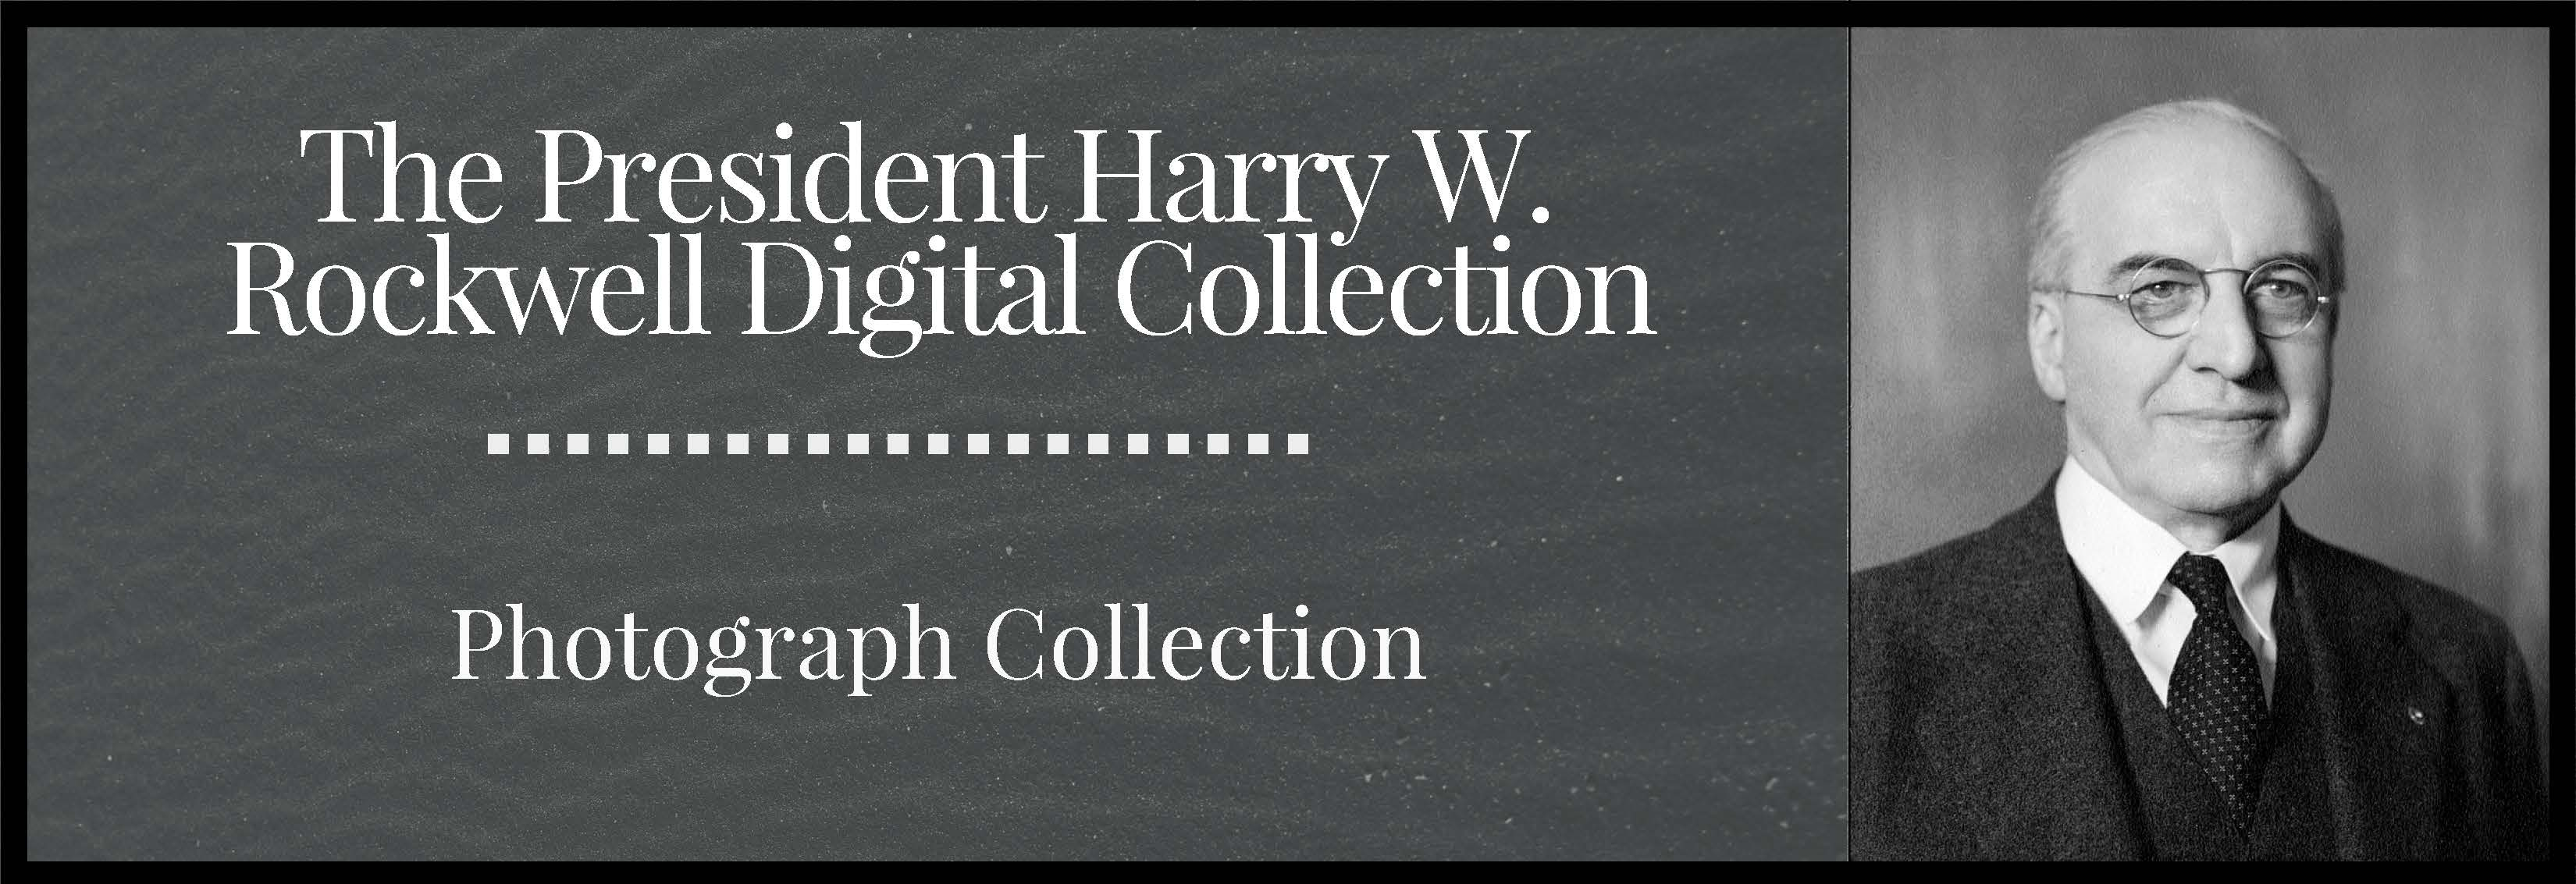 The President Harry W. Rockwell's Photograph Collection